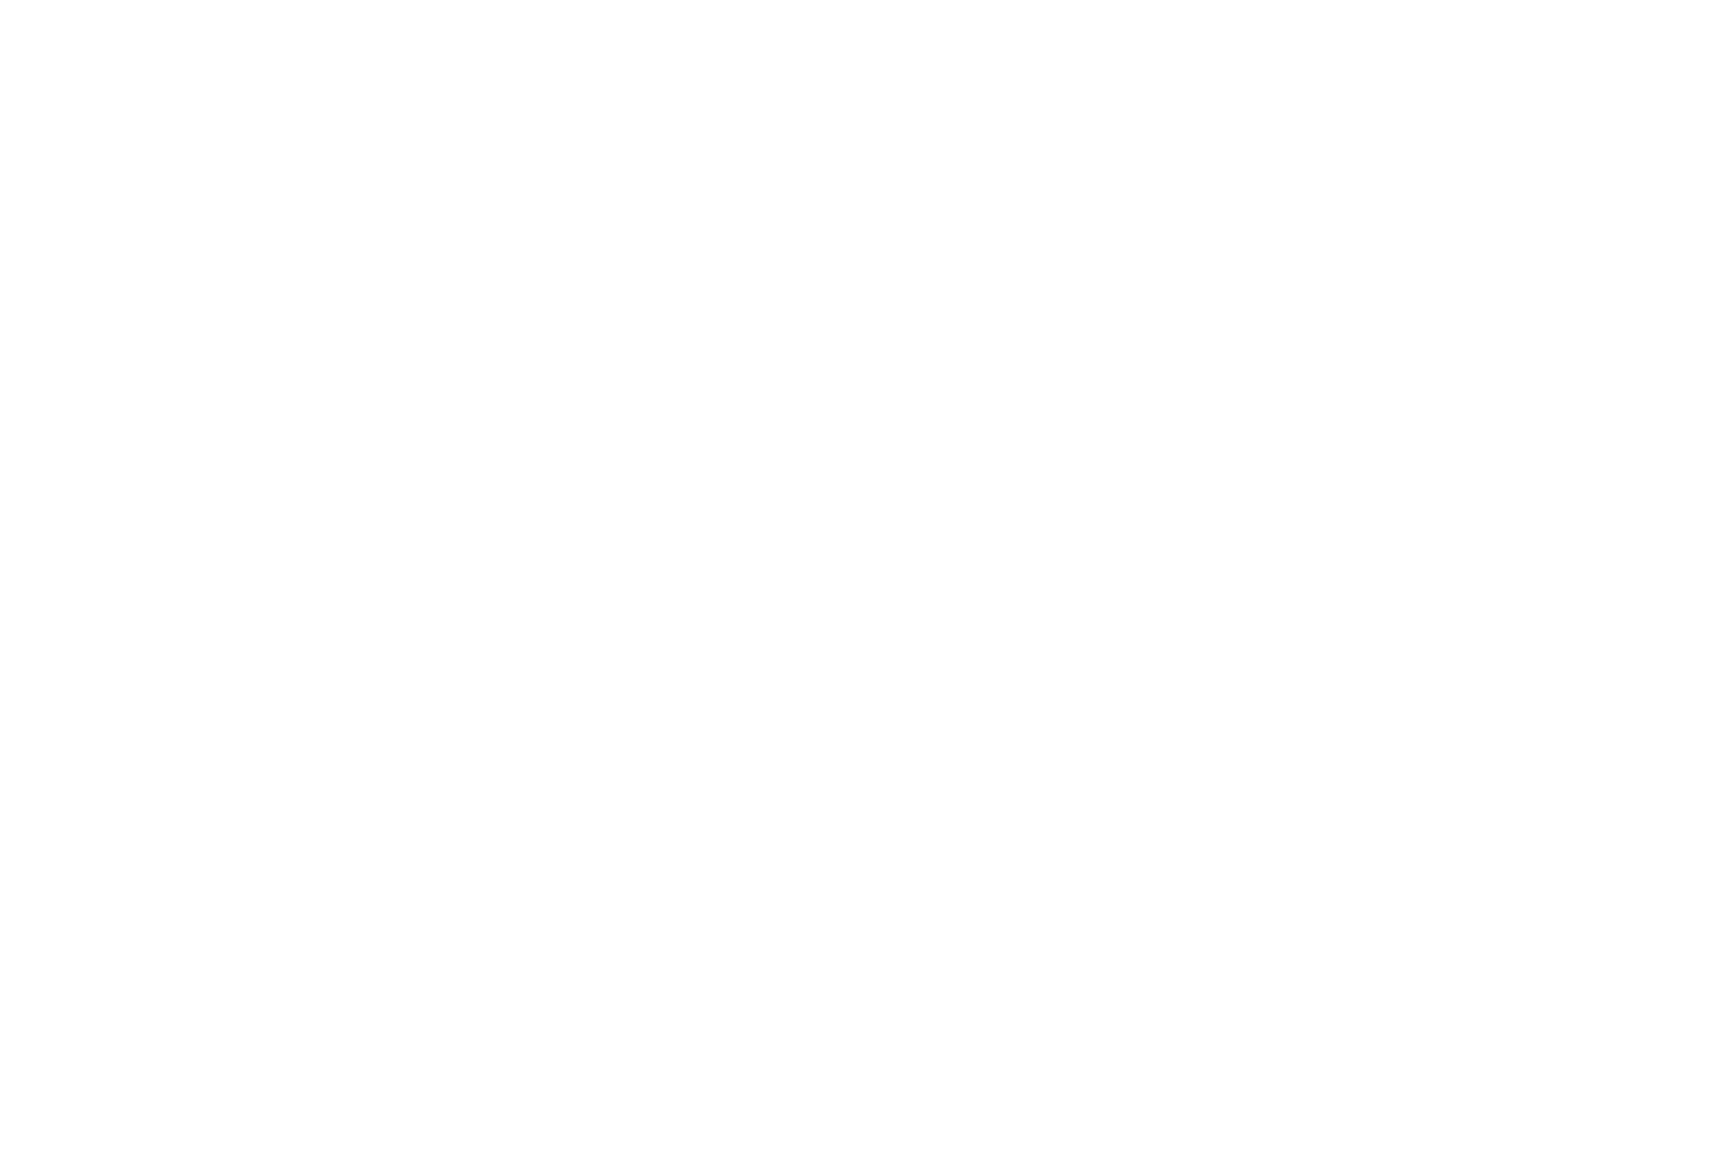 SEMI-FINALIST - WriteMovies.com International Writing Competition